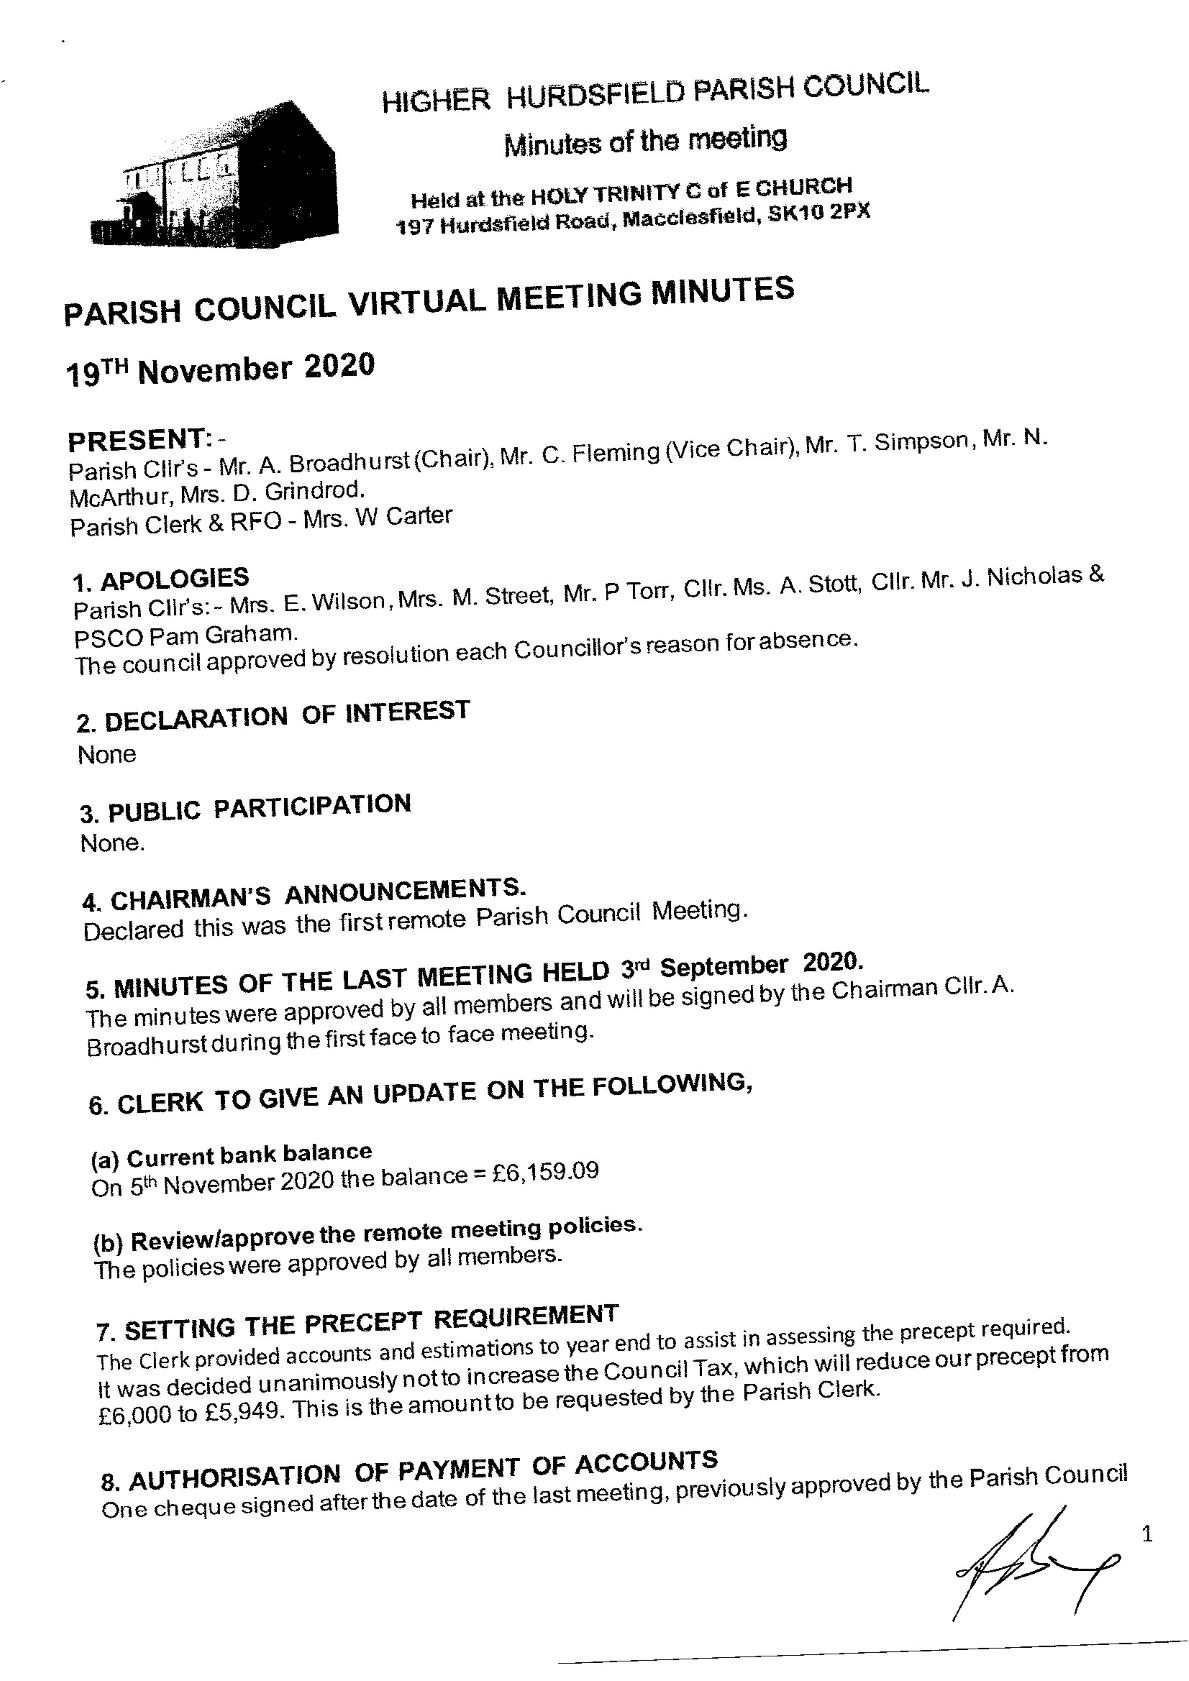 Signed Minutes of the meeting. 1 of 3